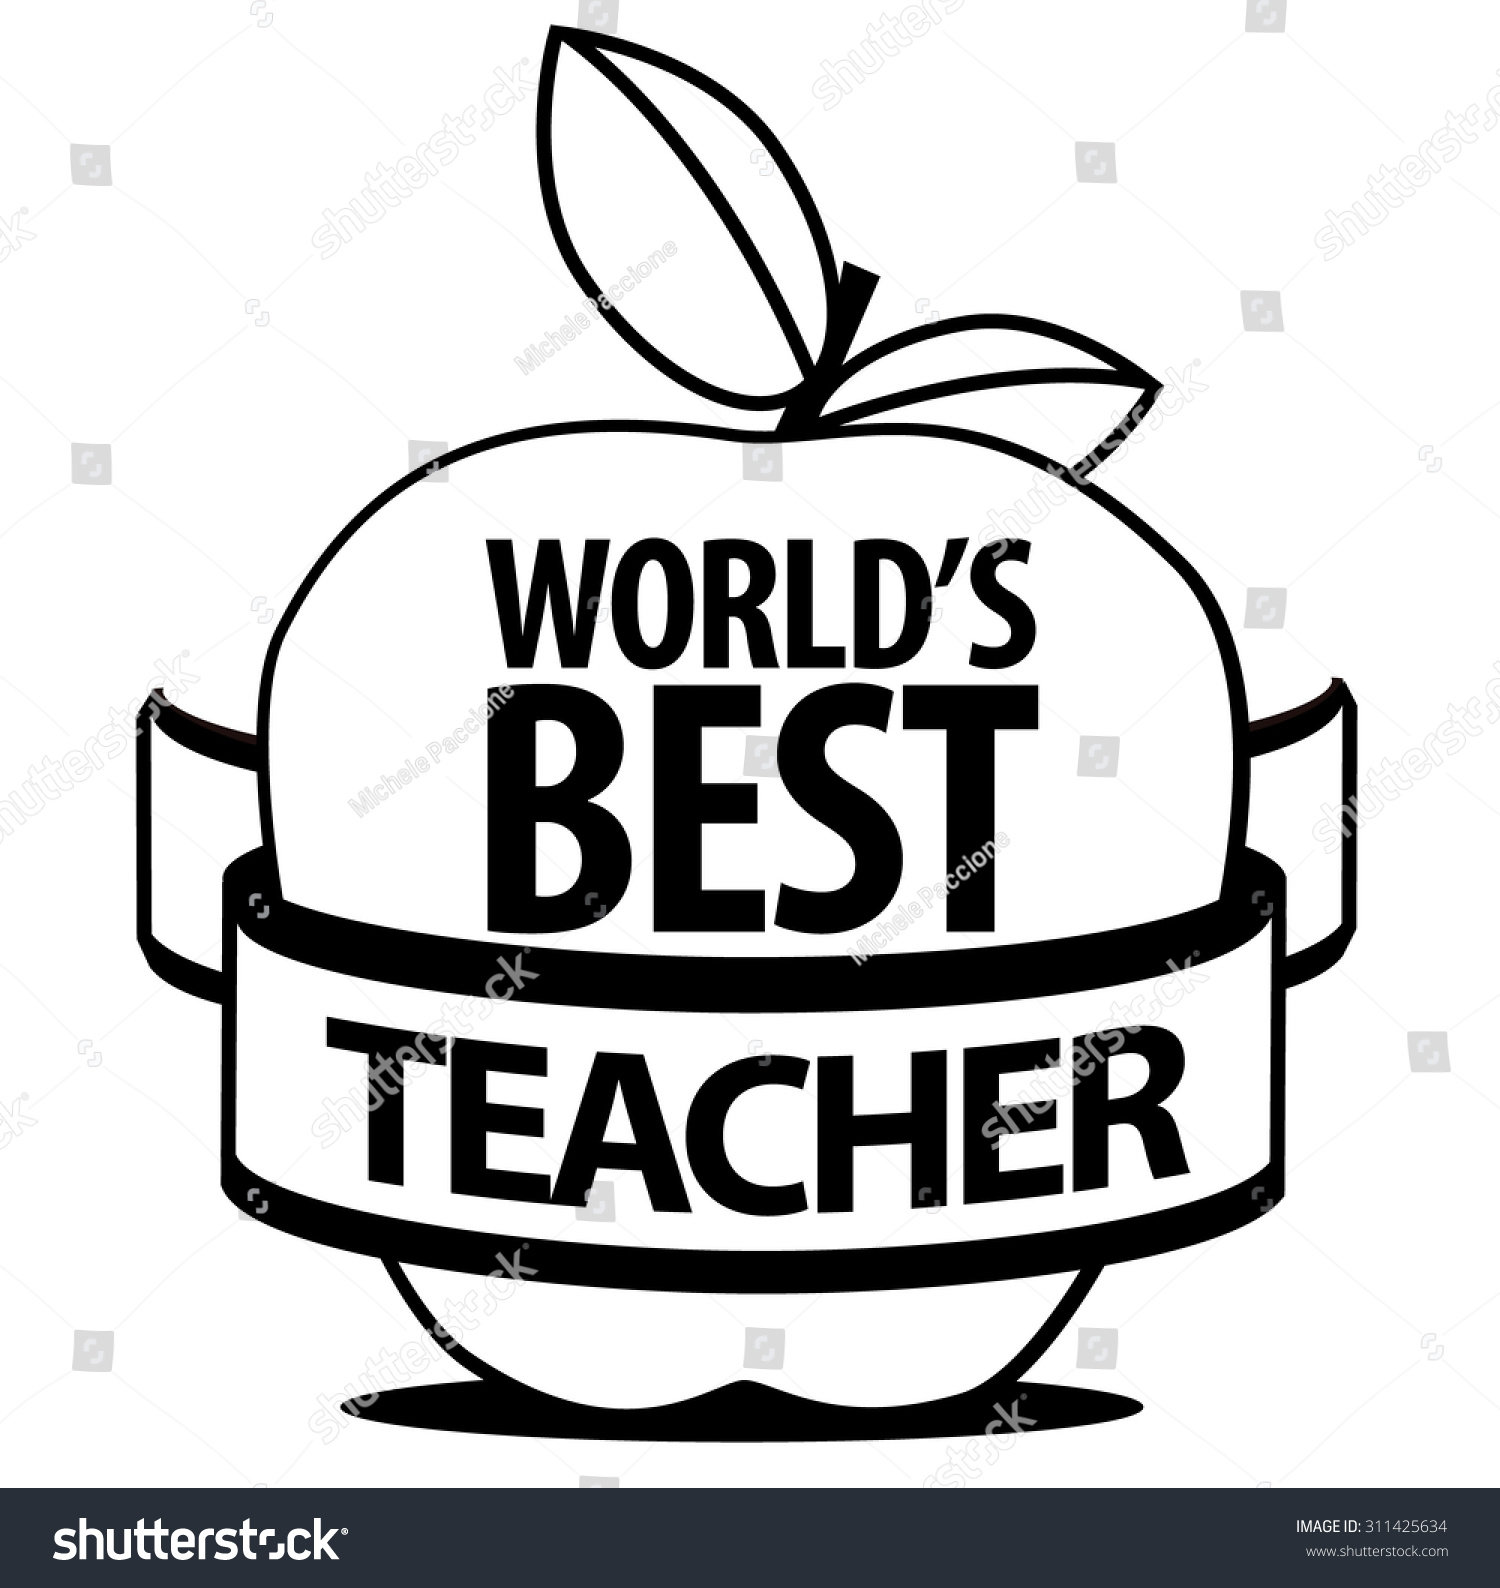 Best Black And White Posters World 39s Best Teacher Black And White Icon Royalty Free